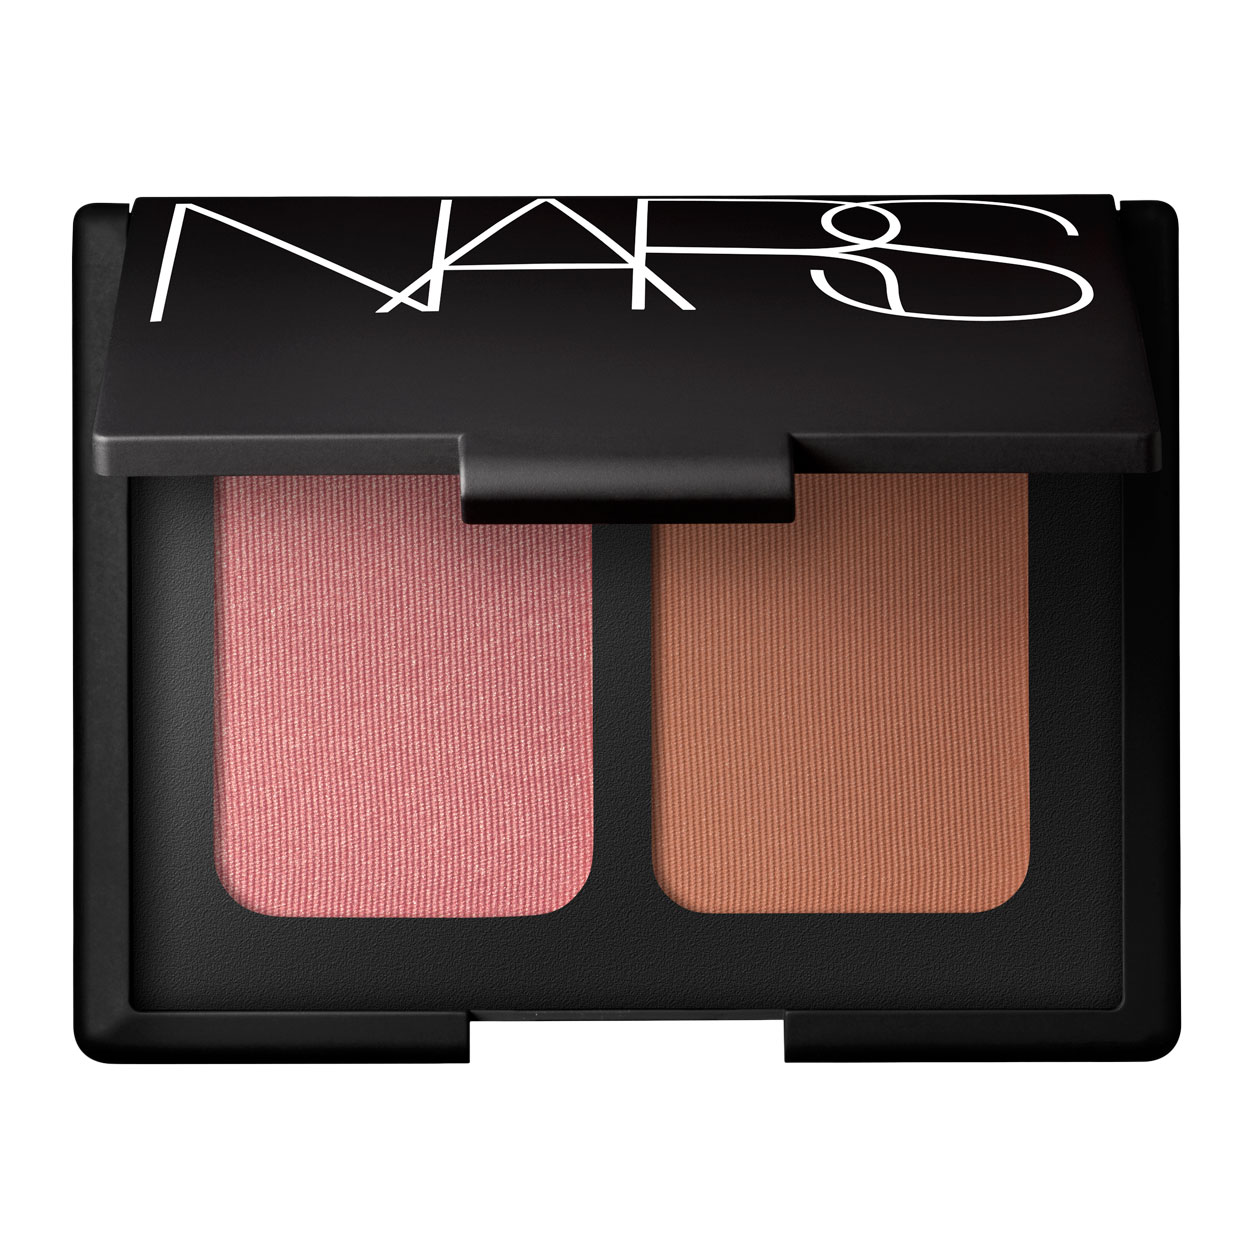 Blush and bronzer give glowing complexion